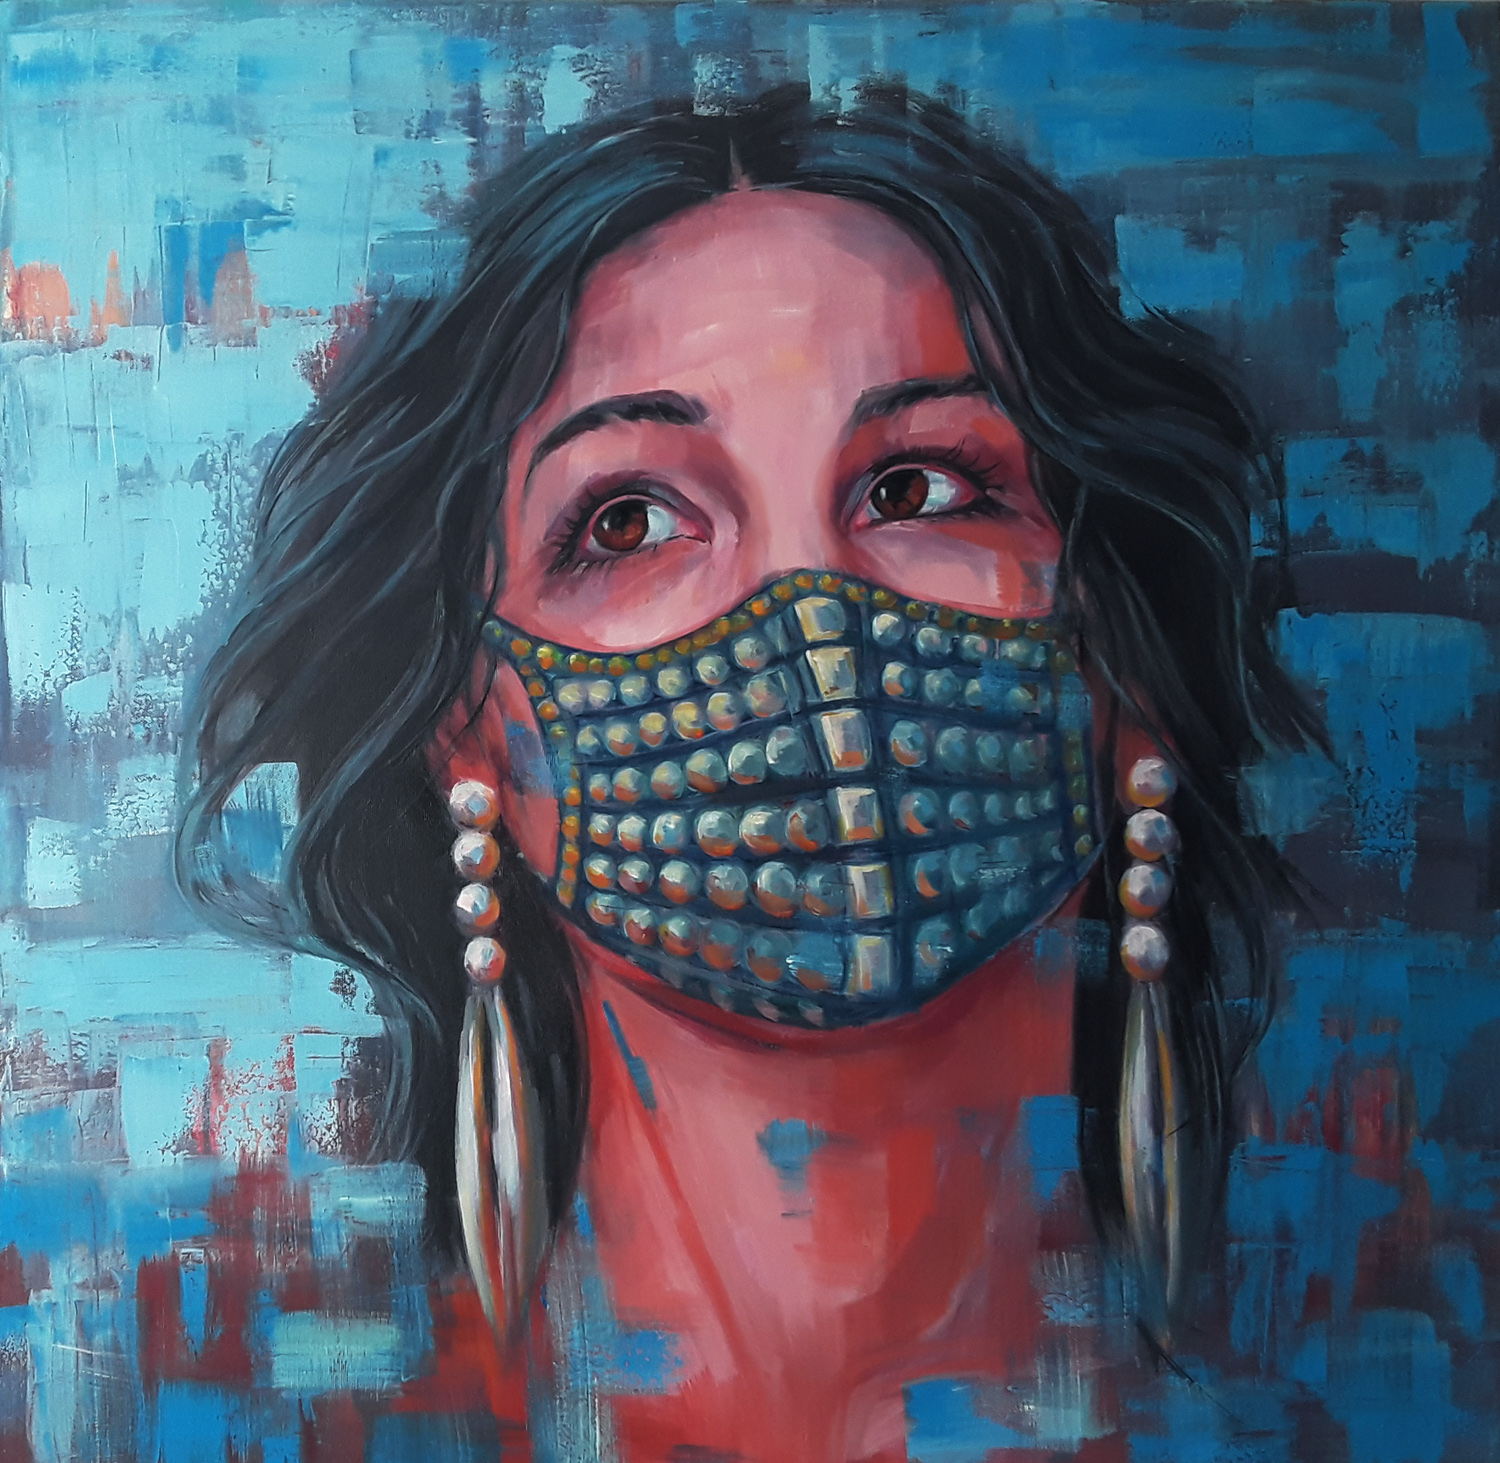 Lady in the mask, 2020